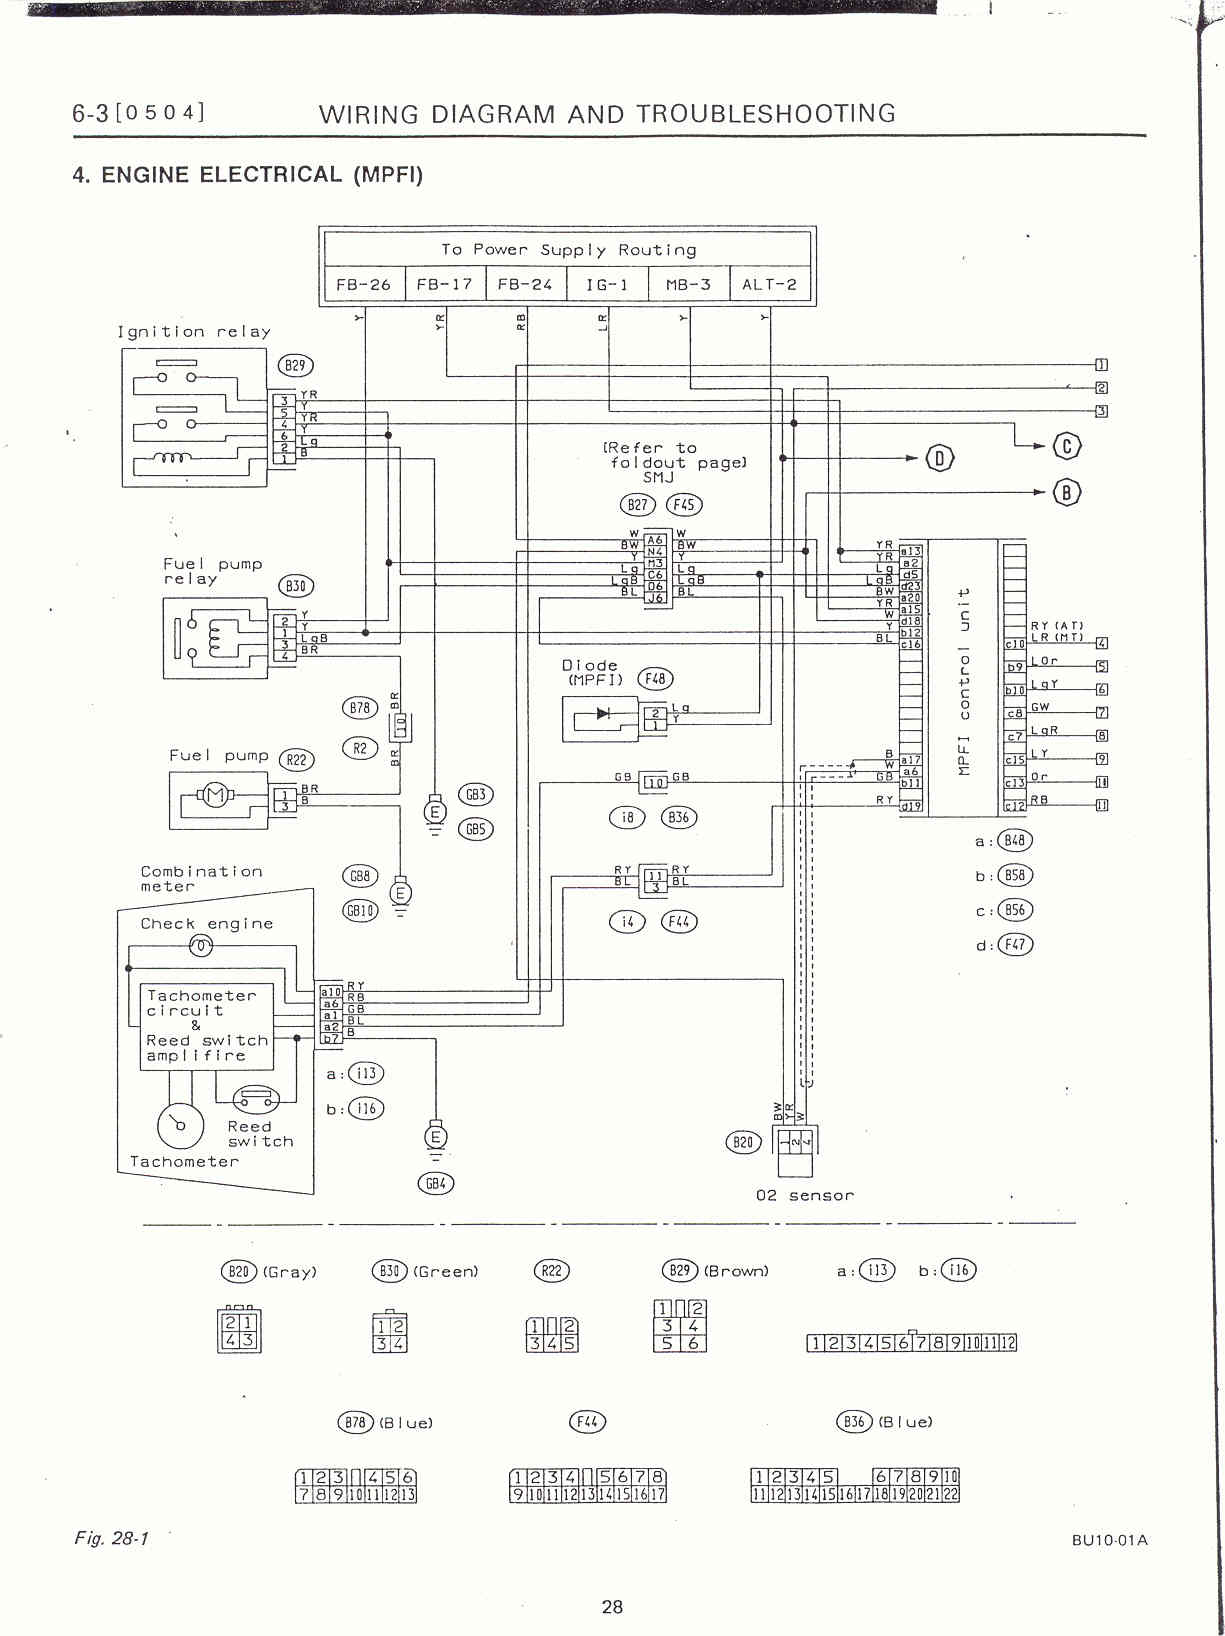 surrealmirage subaru legacy swap electrical info & notes ford model t wiring -diagram engine electrical